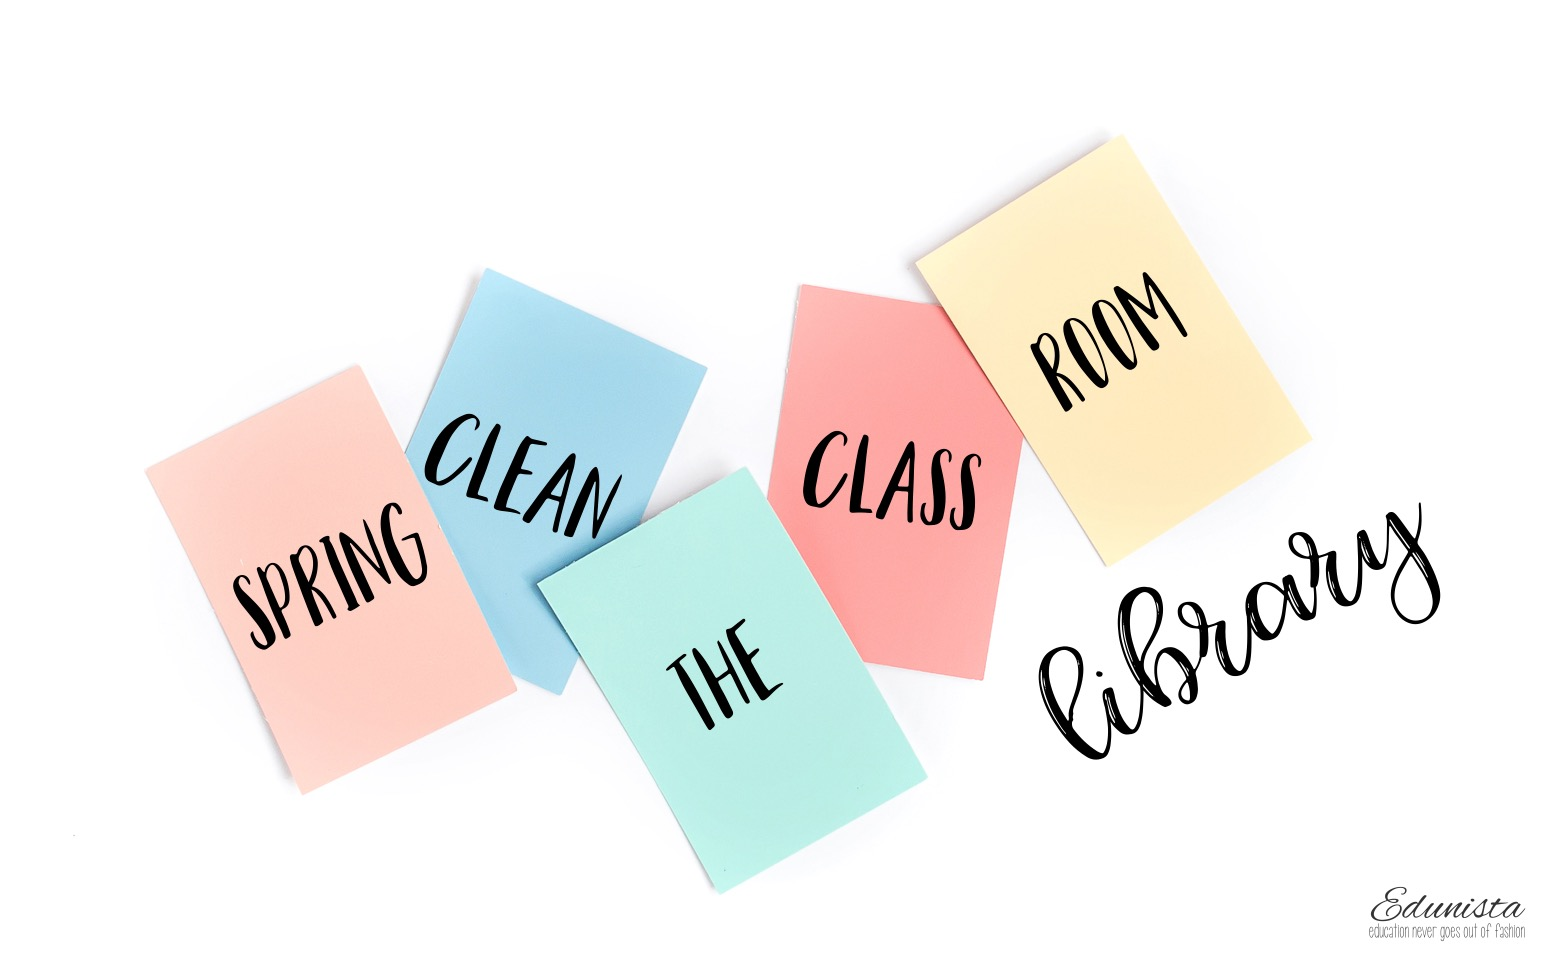 Blog-Image-March-2017-spring-clean-the-classroom-library.jpg